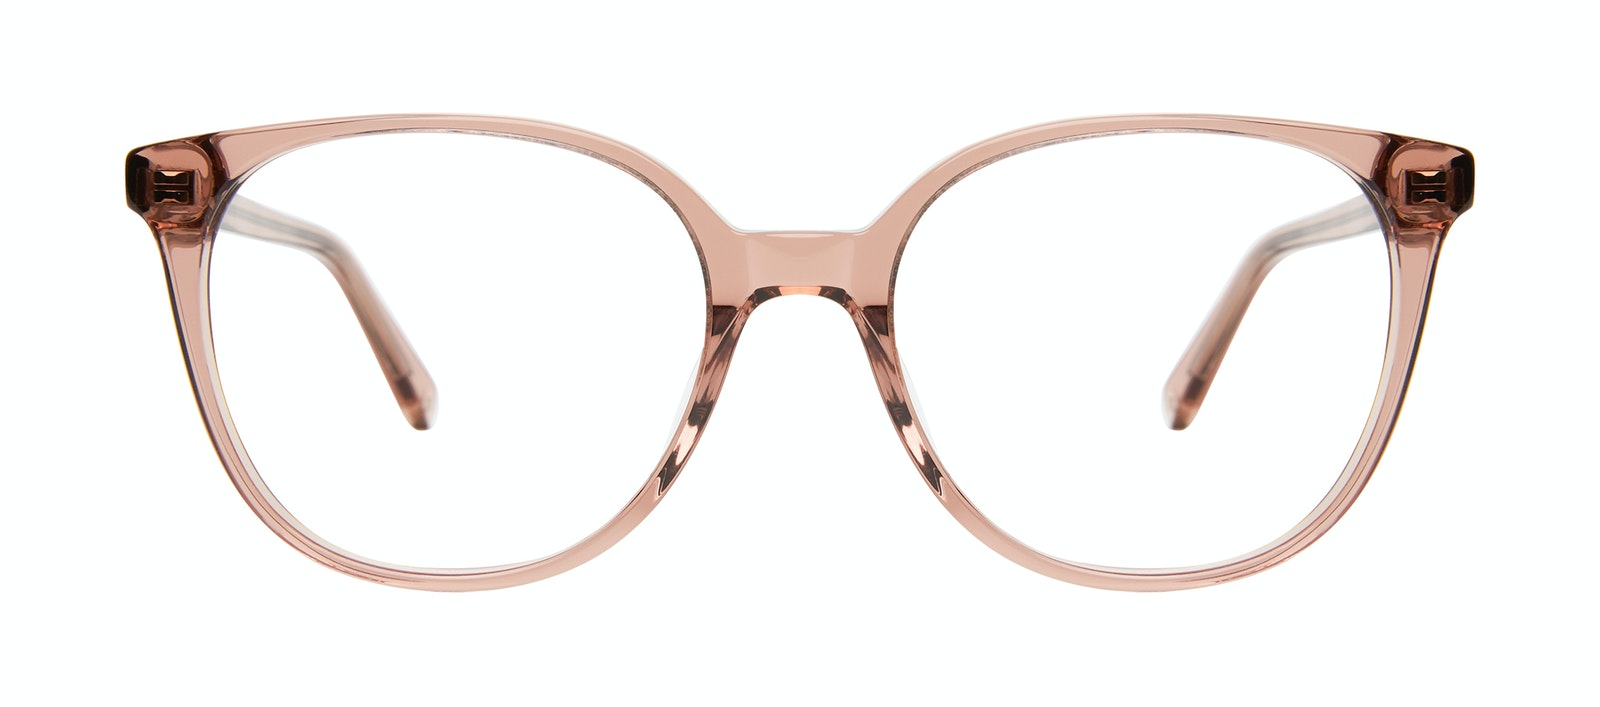 Affordable Fashion Glasses Square Eyeglasses Women Novel Rose Front